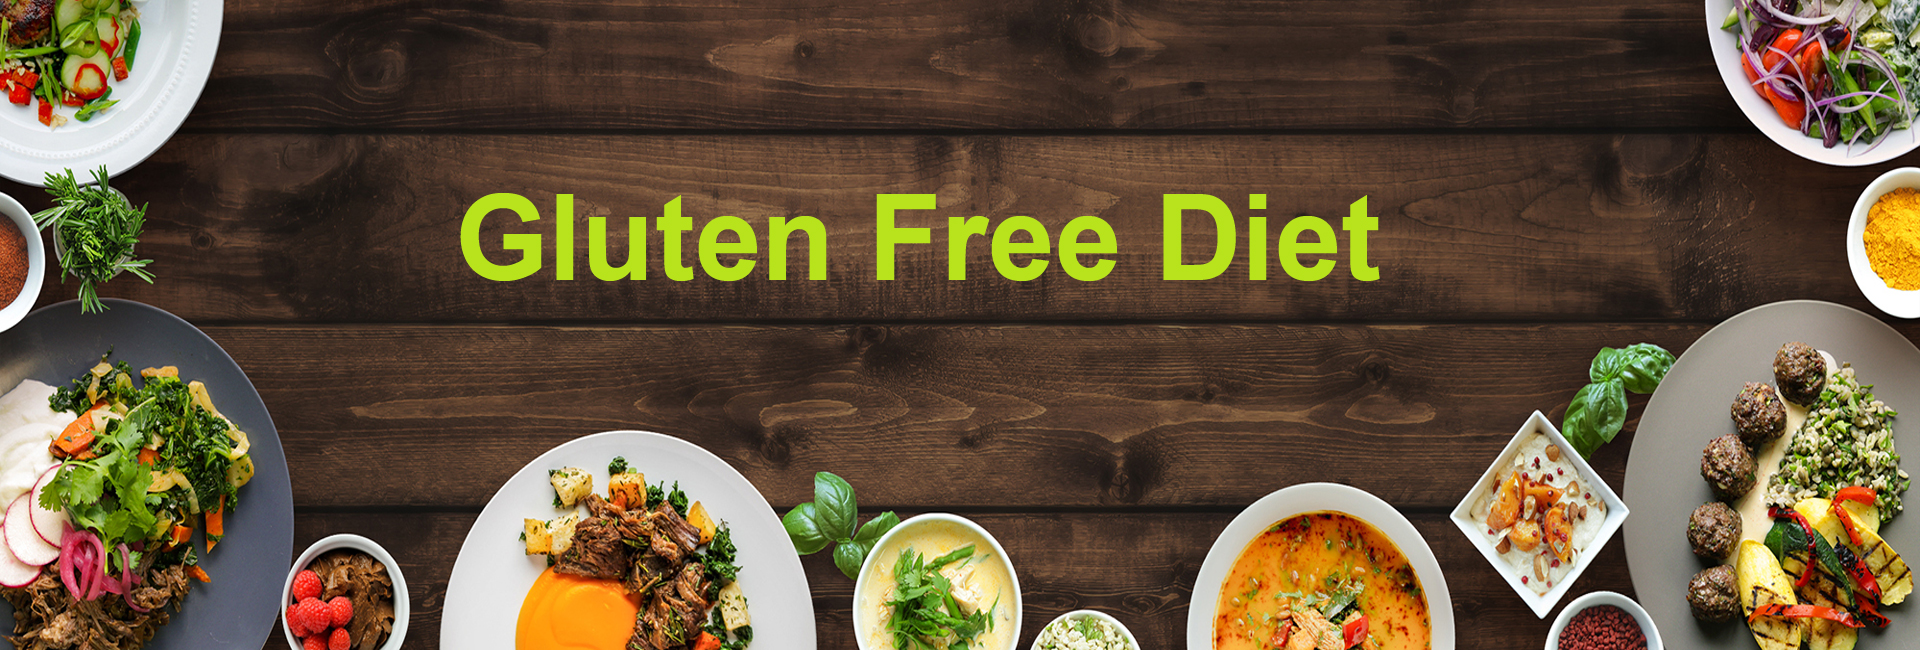 Gluten Free Diet In Elliot Lake